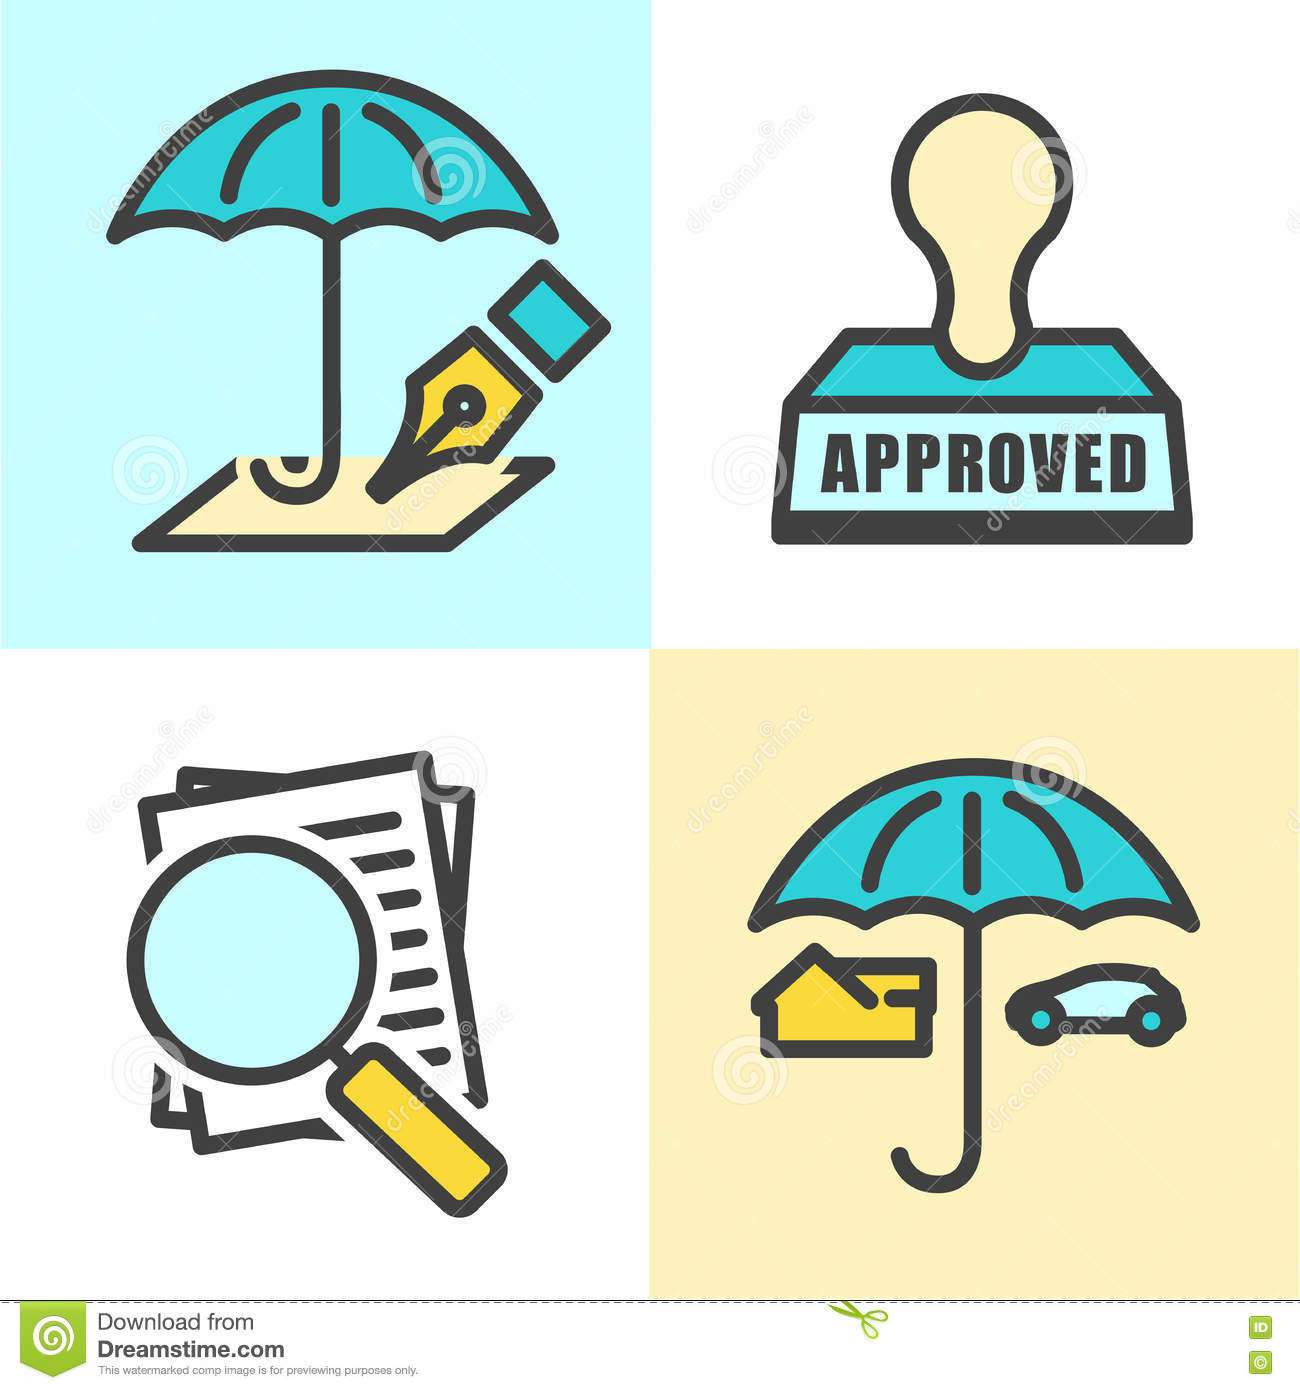 Outline Home And Auto Insurance Icons Vector Illustration